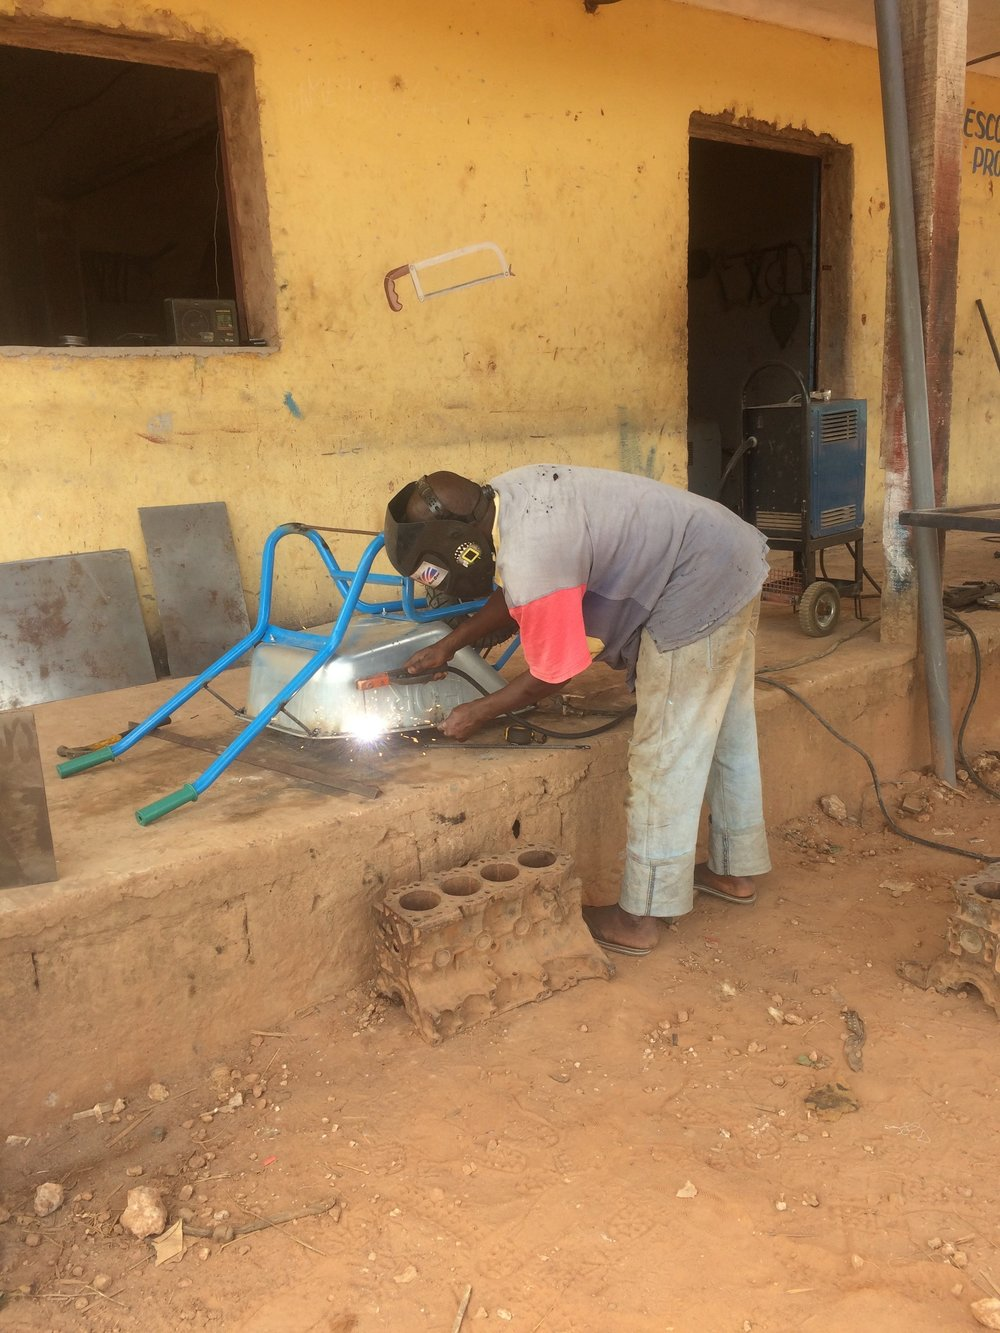 Welding a community member's wheelbarrow.